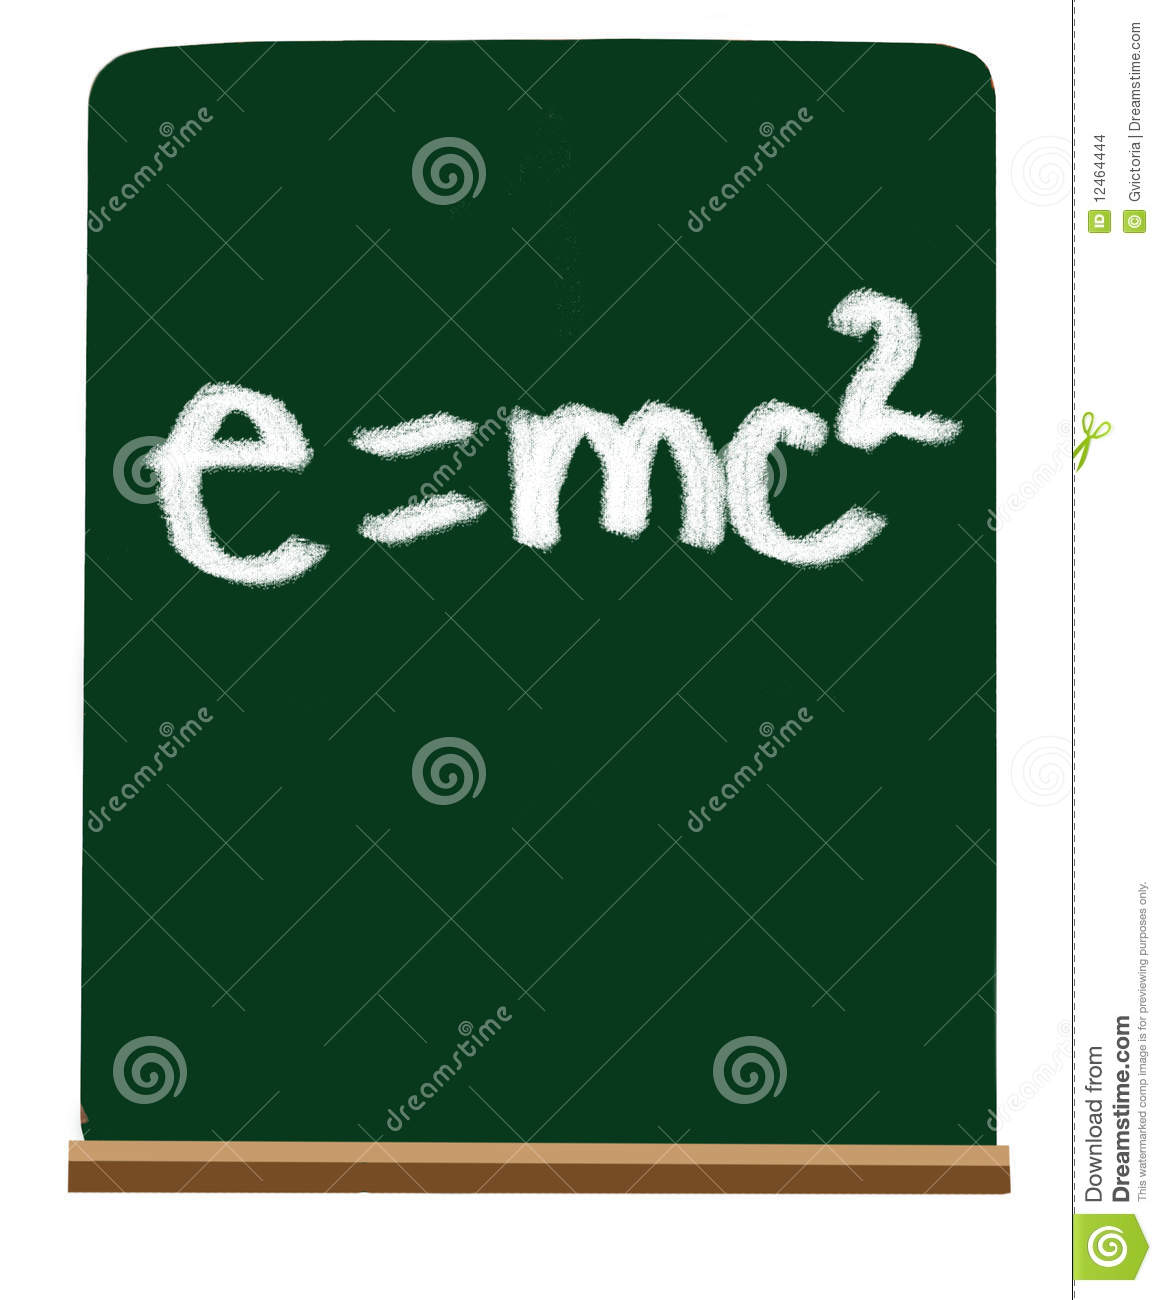 e mc 2 Directed by benjamin fry with jeremy piven, kelli williams, liza walker, james villiers a physicist struggling to prove one of einstein's theories still finds time to dabble in an extra-curricular relationship with one of his lab assistants.